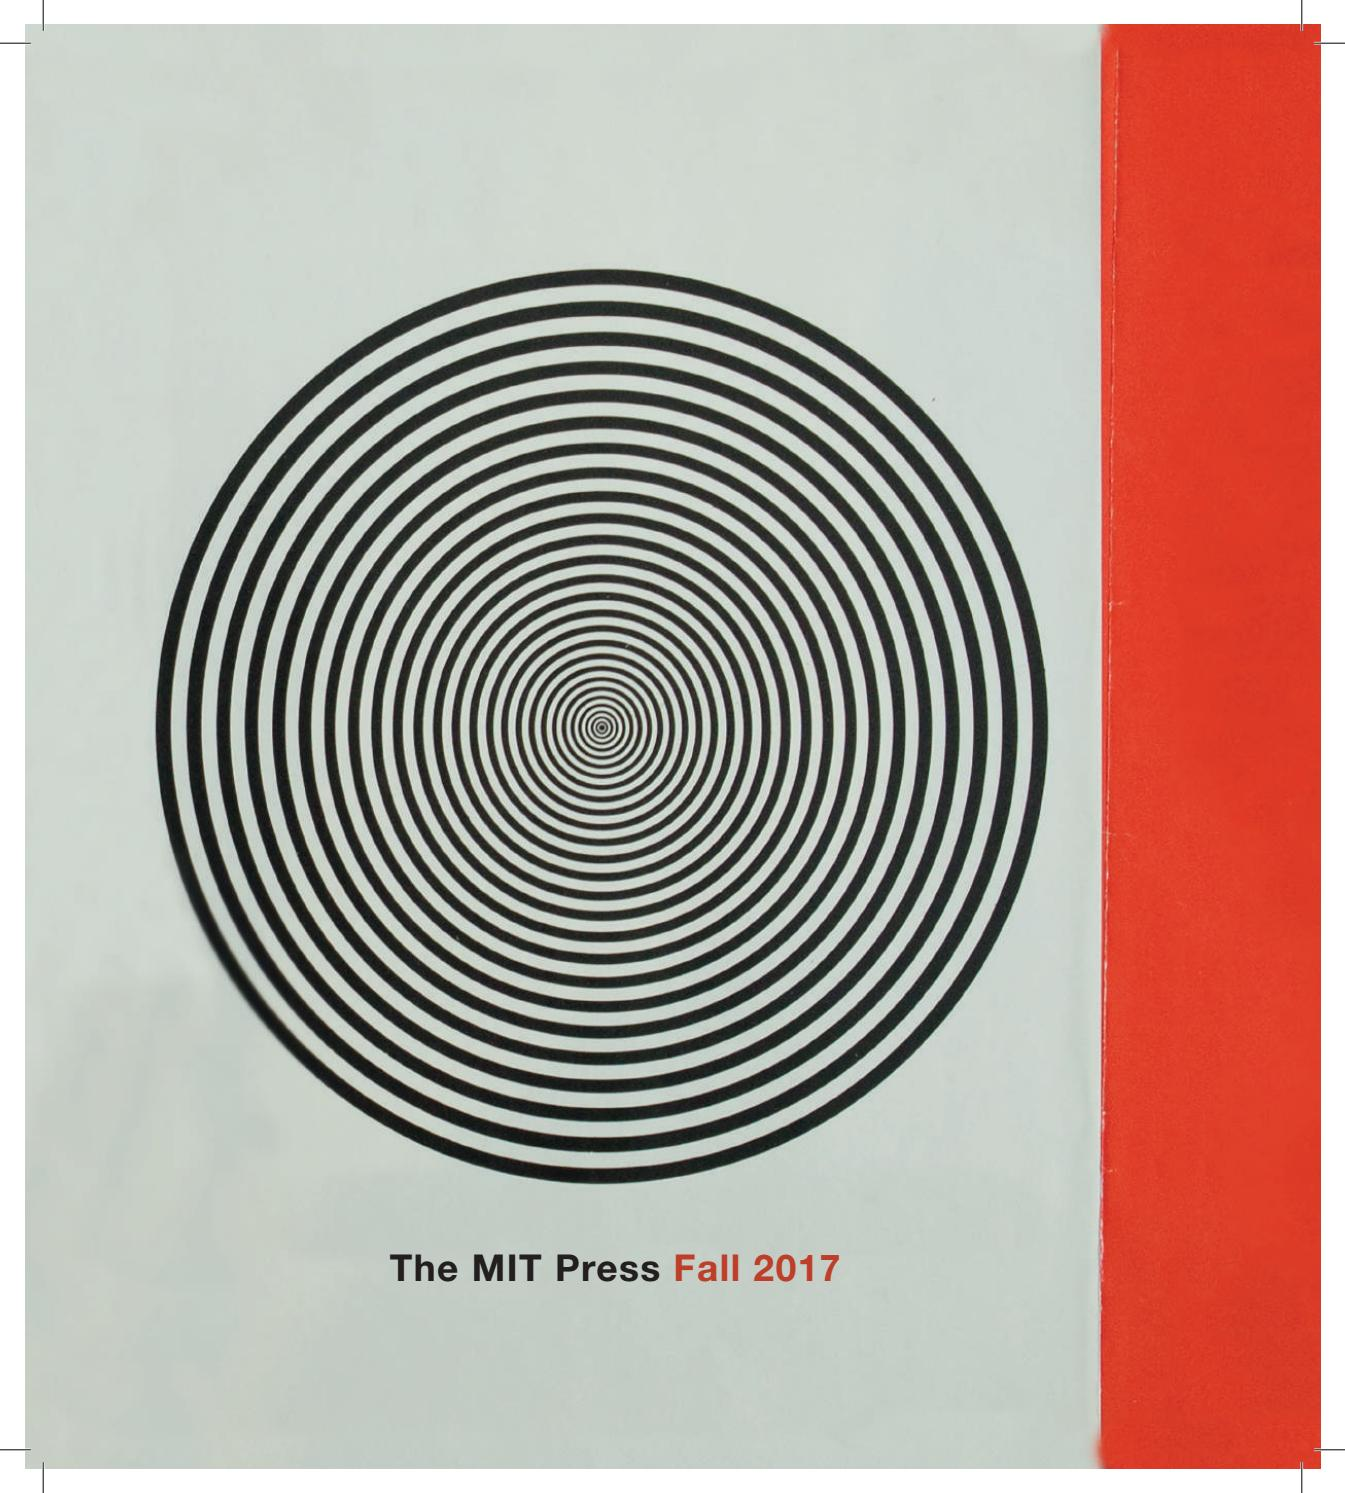 Mit press fall 2017 catalog by mit press issuu fandeluxe Images